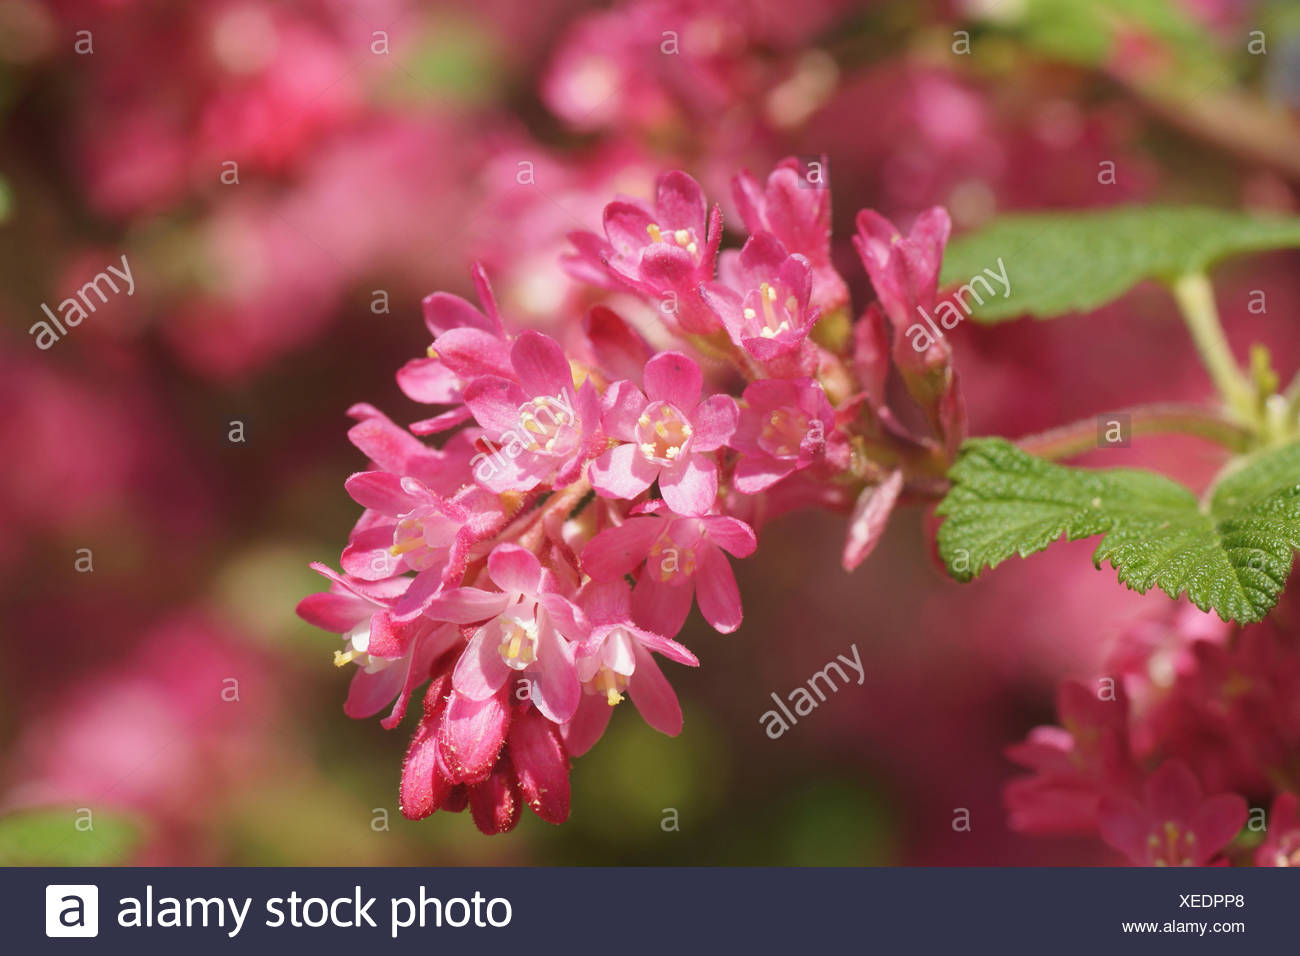 Red Flowering Currant Stock Photos Red Flowering Currant Stock